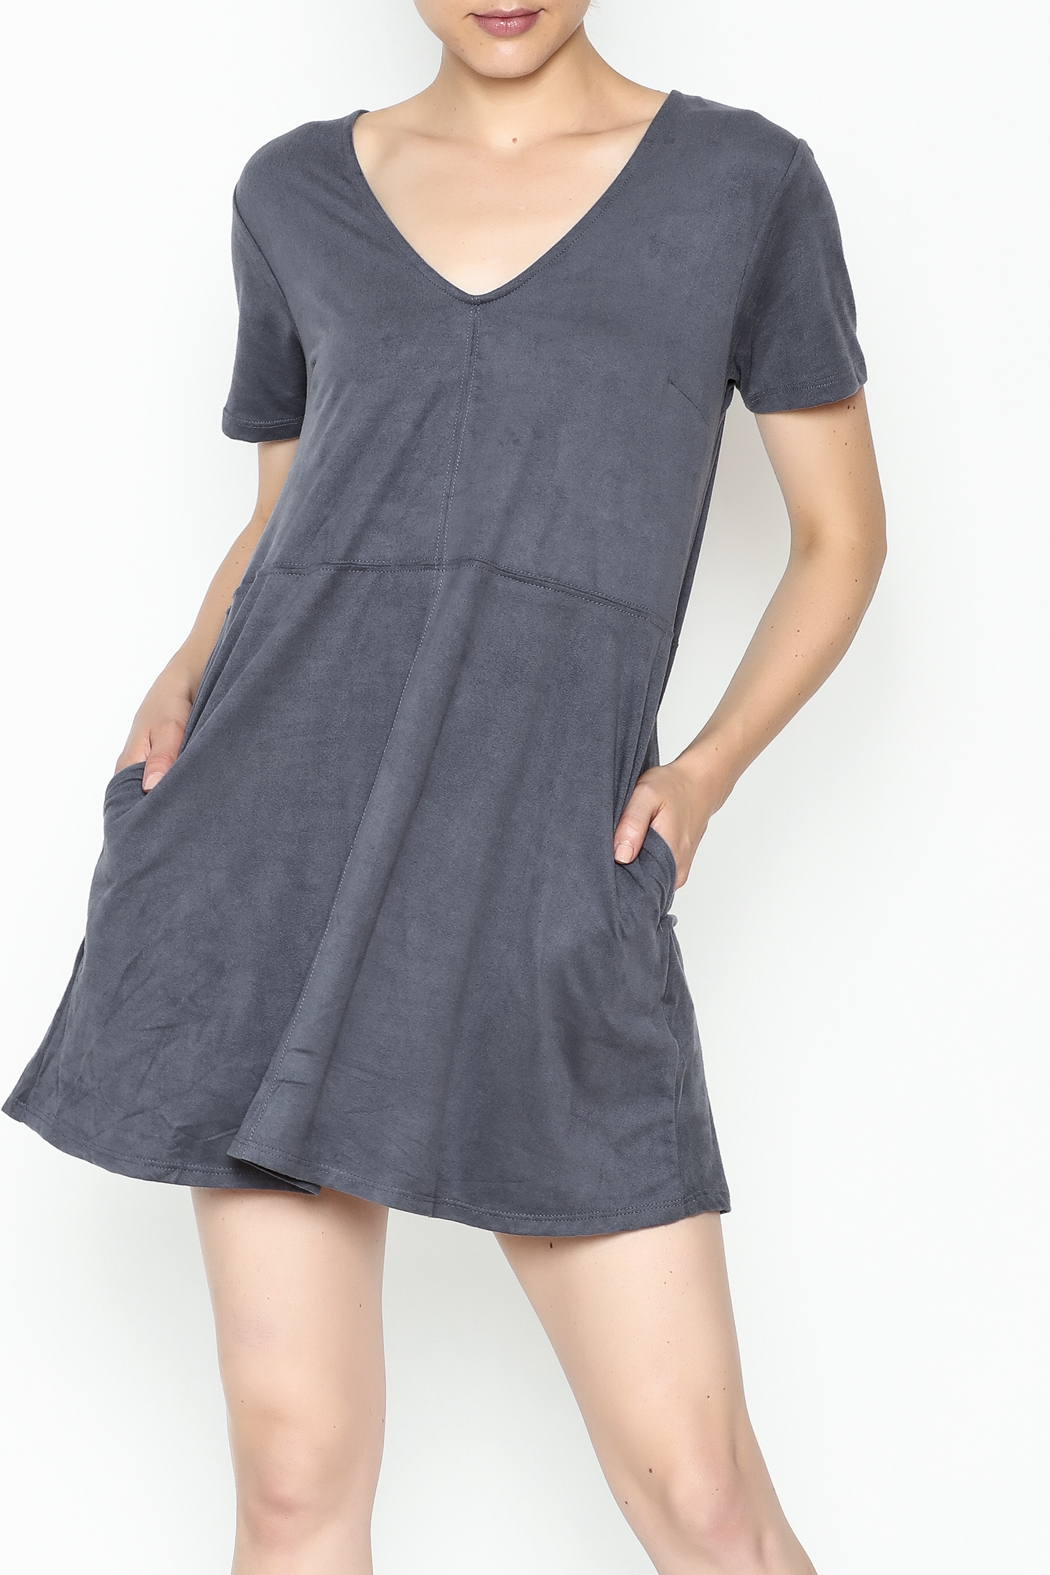 Zsupply Faux Suede Shift Dress - Main Image